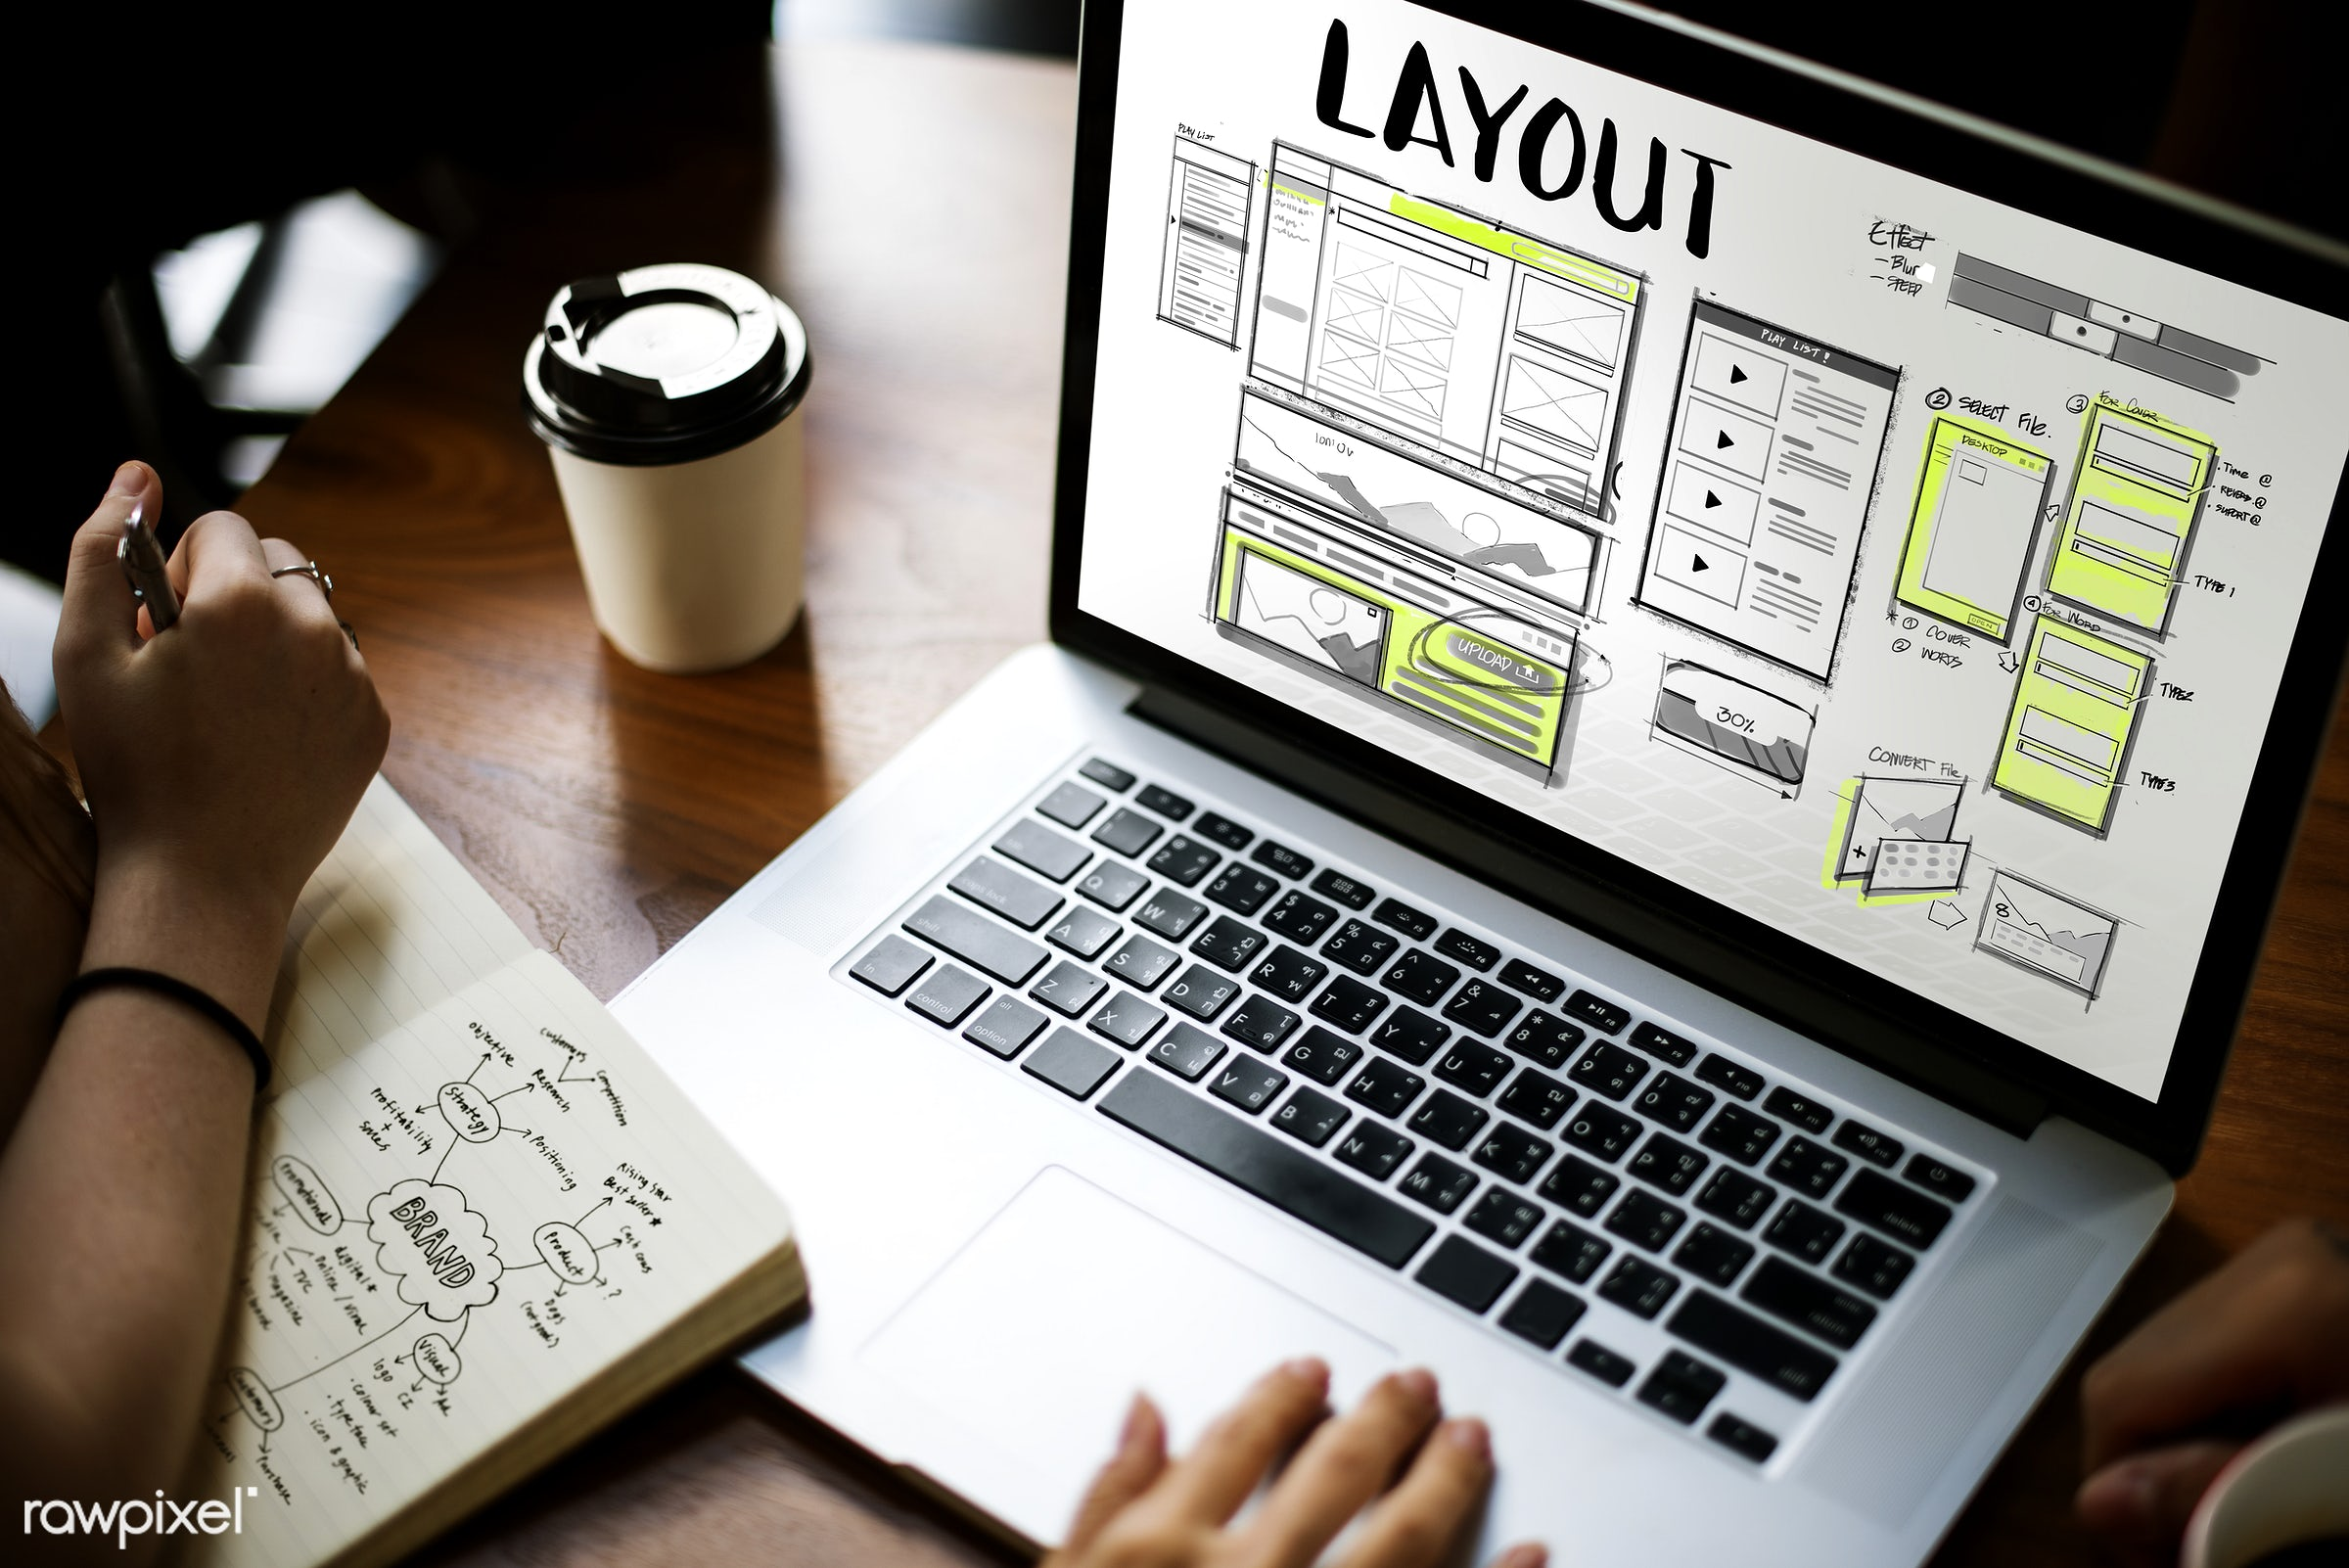 browser, browsing, coding, coffee cup, content, design, develop, device, digital, digital device, draft, drawing, graphic,...